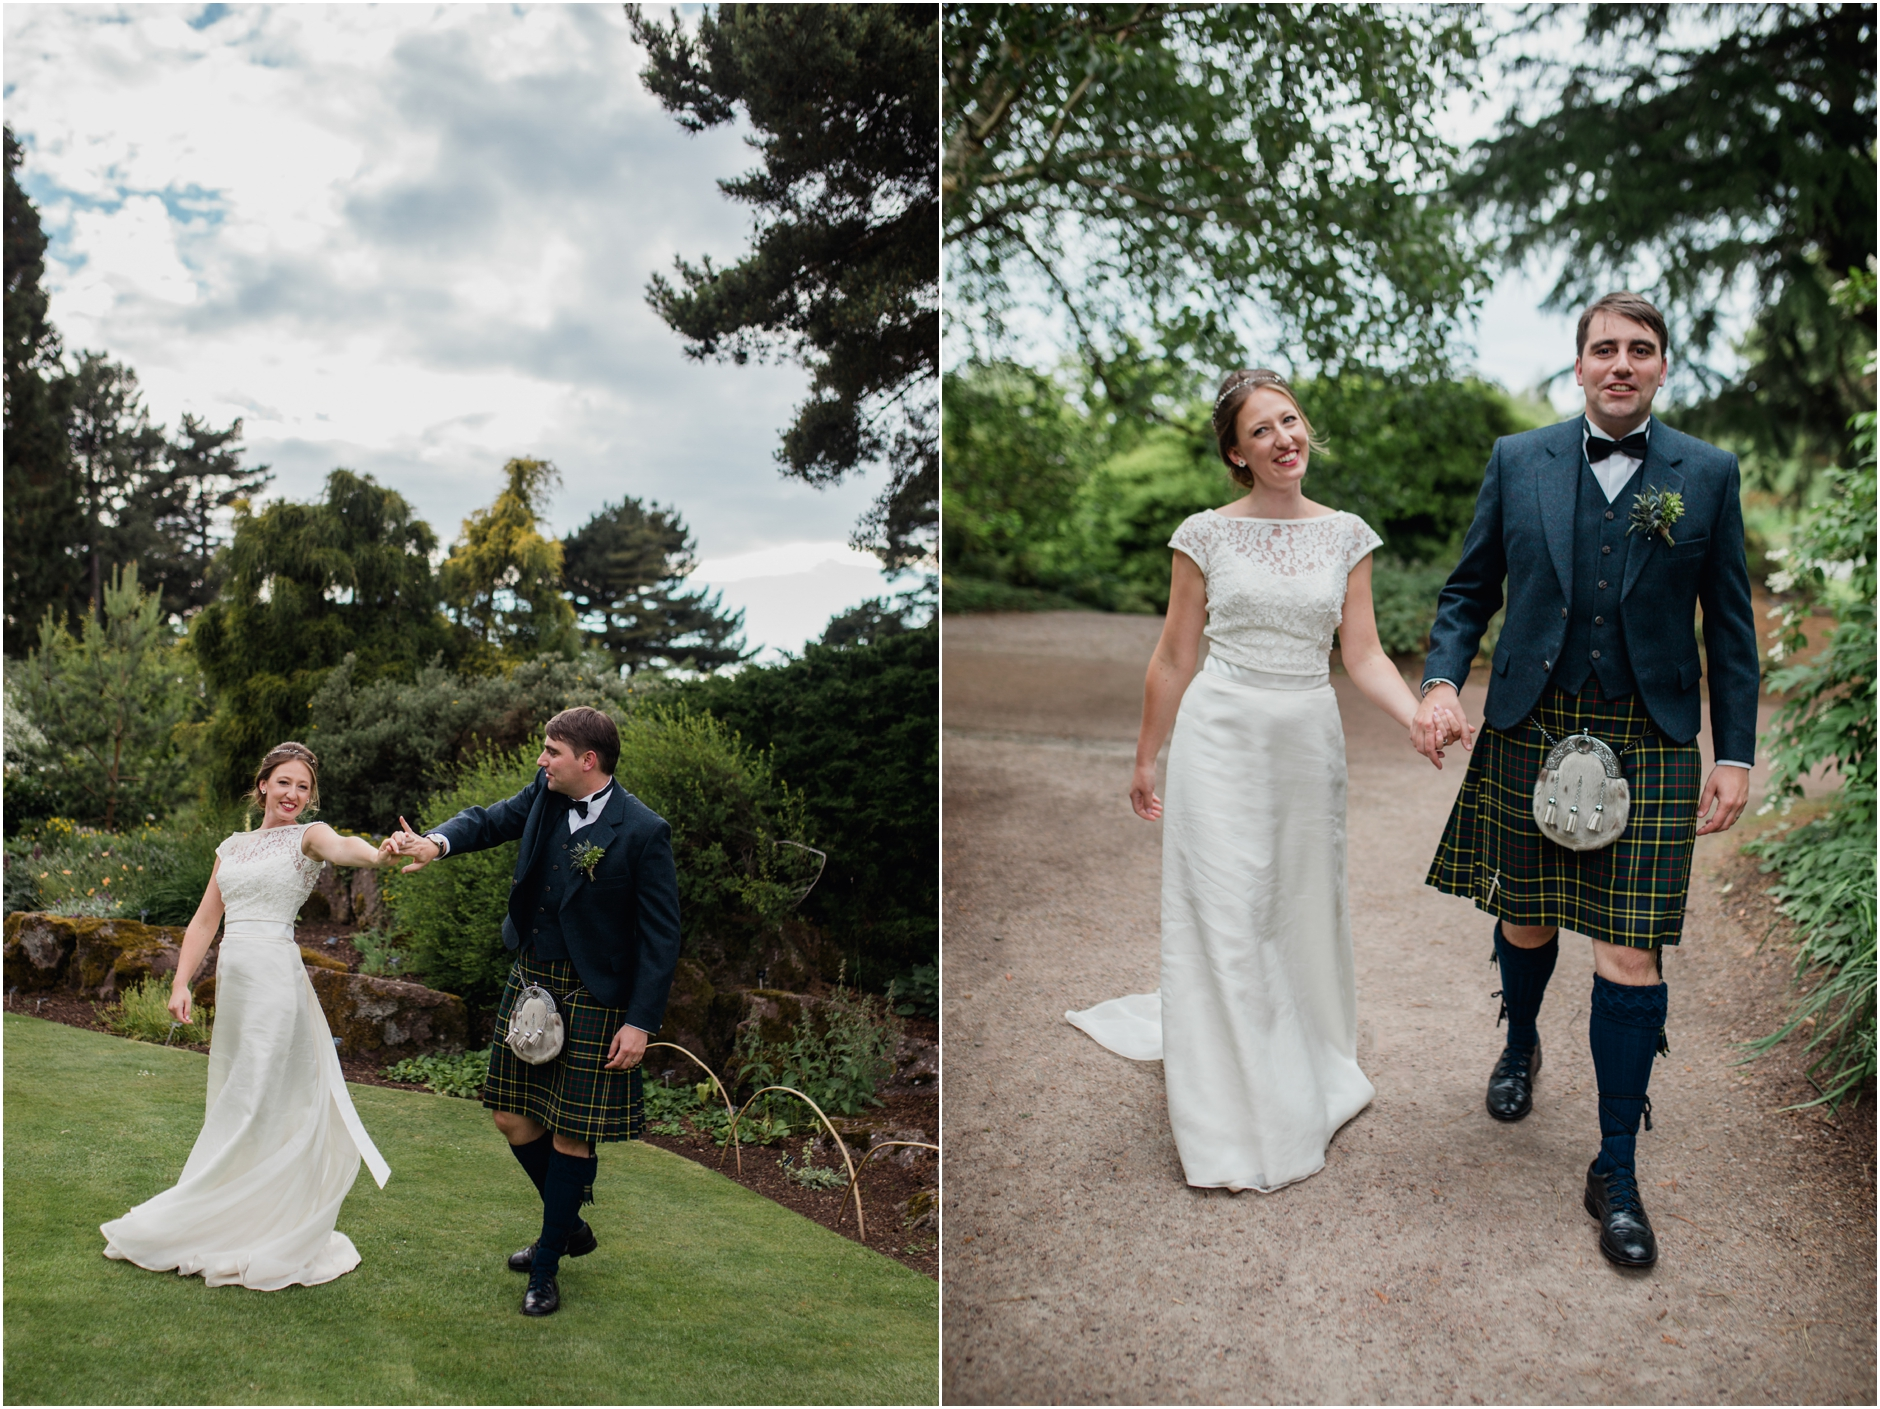 summer scottish weedding at botanical gardens edinburgh